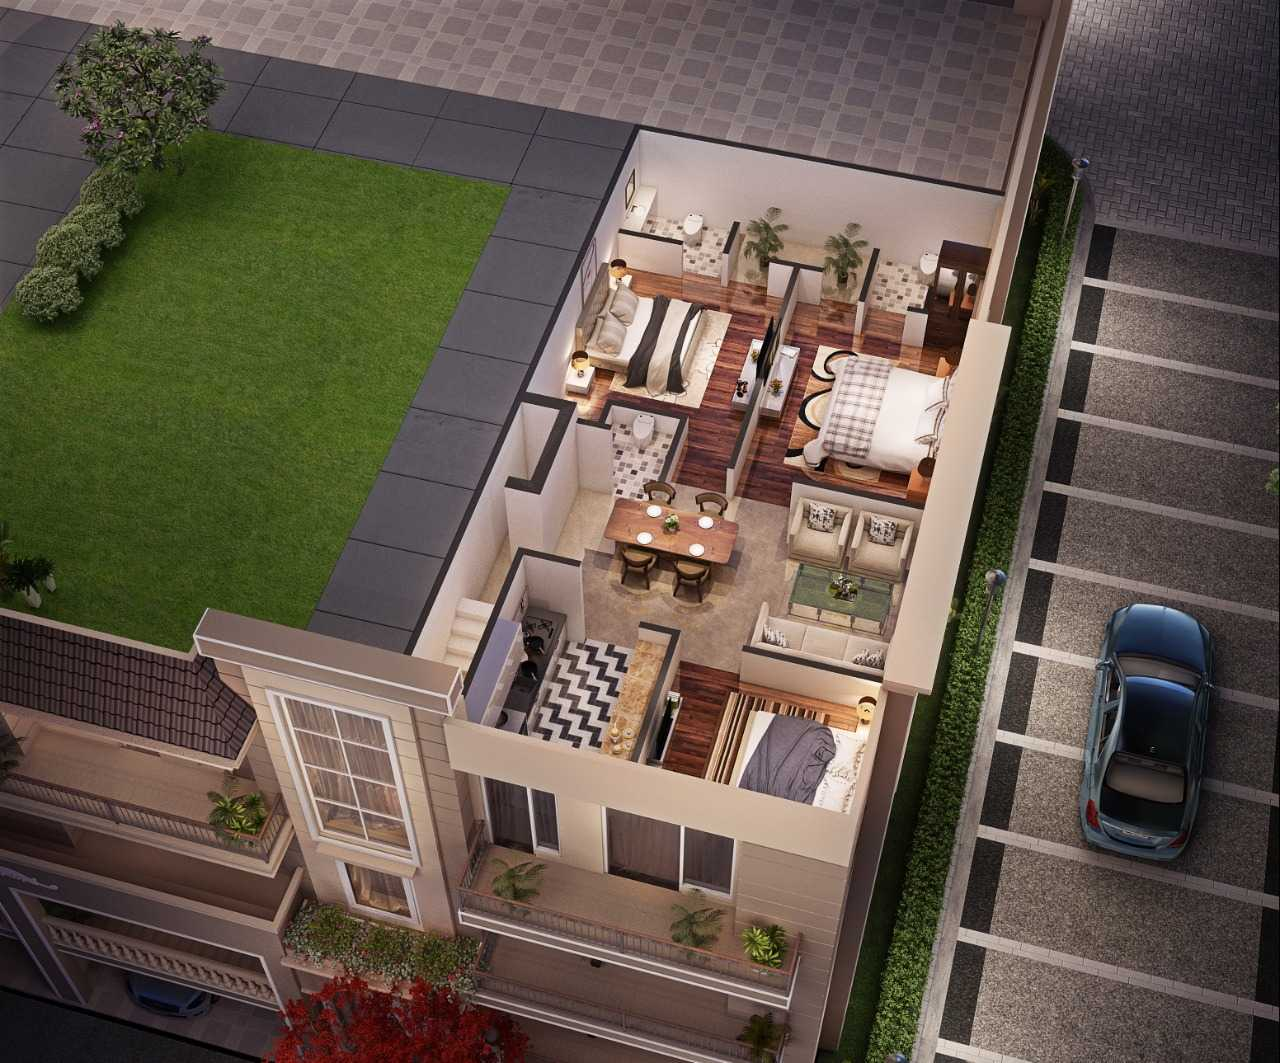 Riverdale Aerovista brings you plots, villas and independent floors - 3 BHK near Aerocity, Mohali mktd by Dewan Realtors